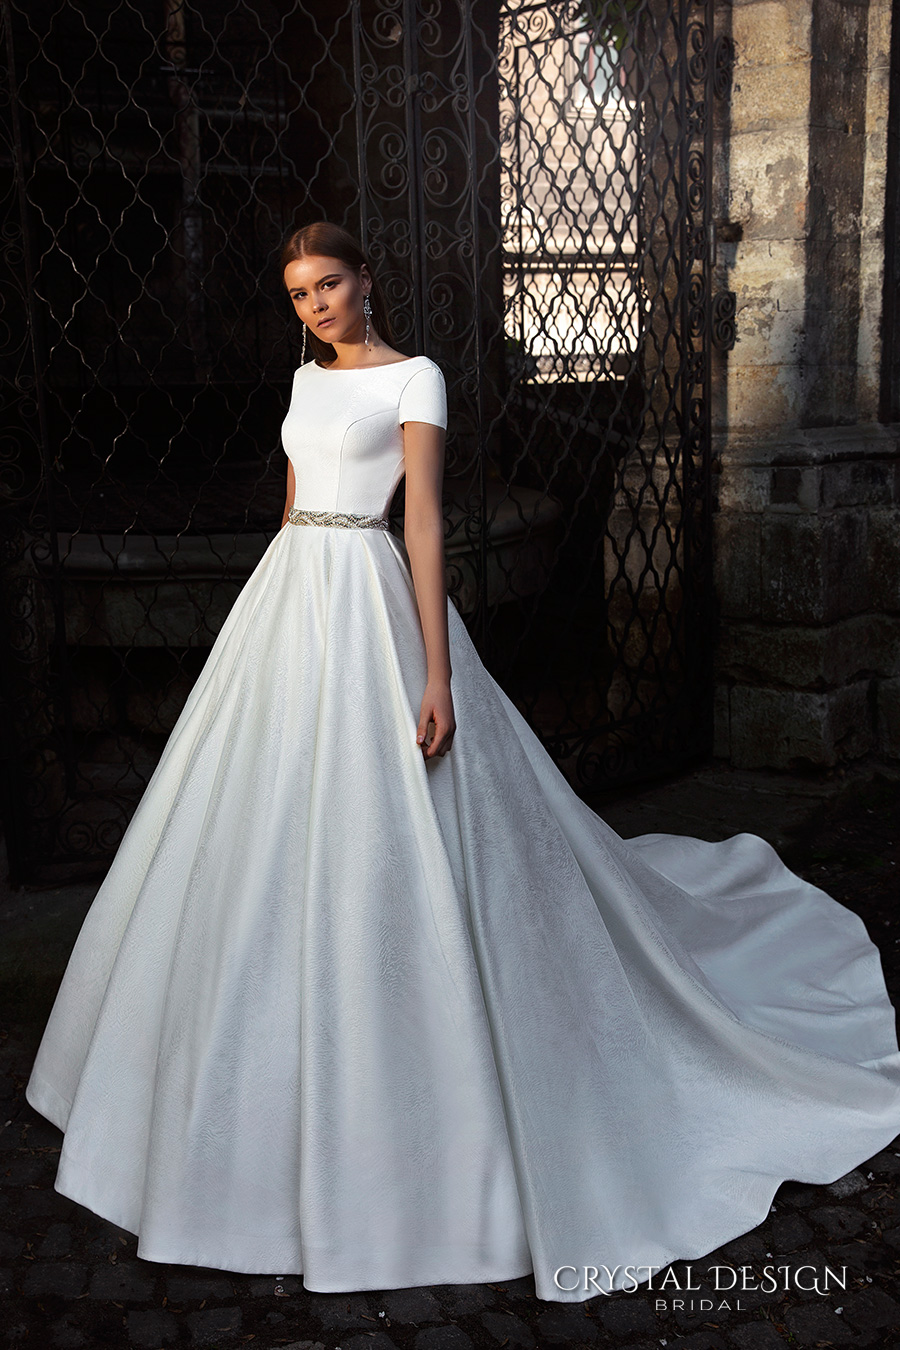 crystal design bridal 2016 short sleeves bateau neckline elegant chic simple a line ball gown wedding dress open back chapel train (roma) mv